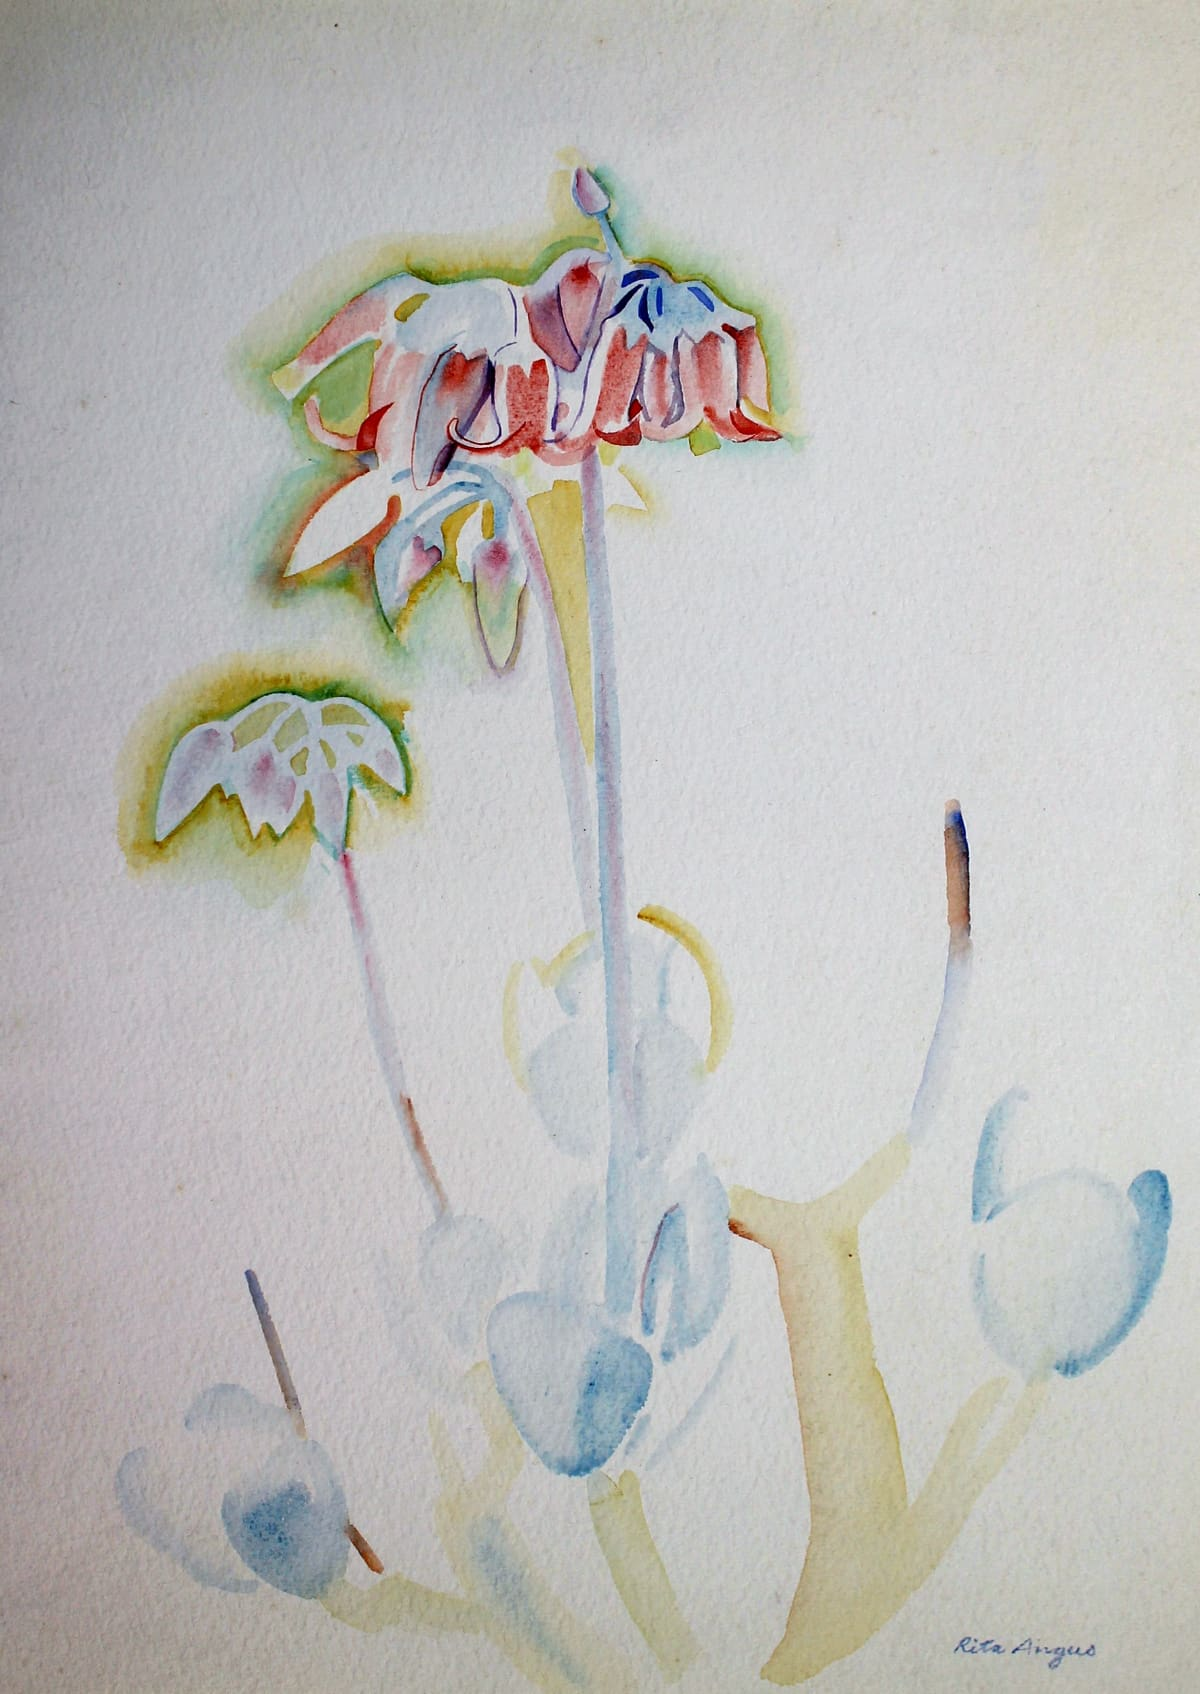 Rita Angus Flower Study (Waikanae), 1951-52 Watercolour on paper 15 x 9.9 in 38 x 25.2 cm